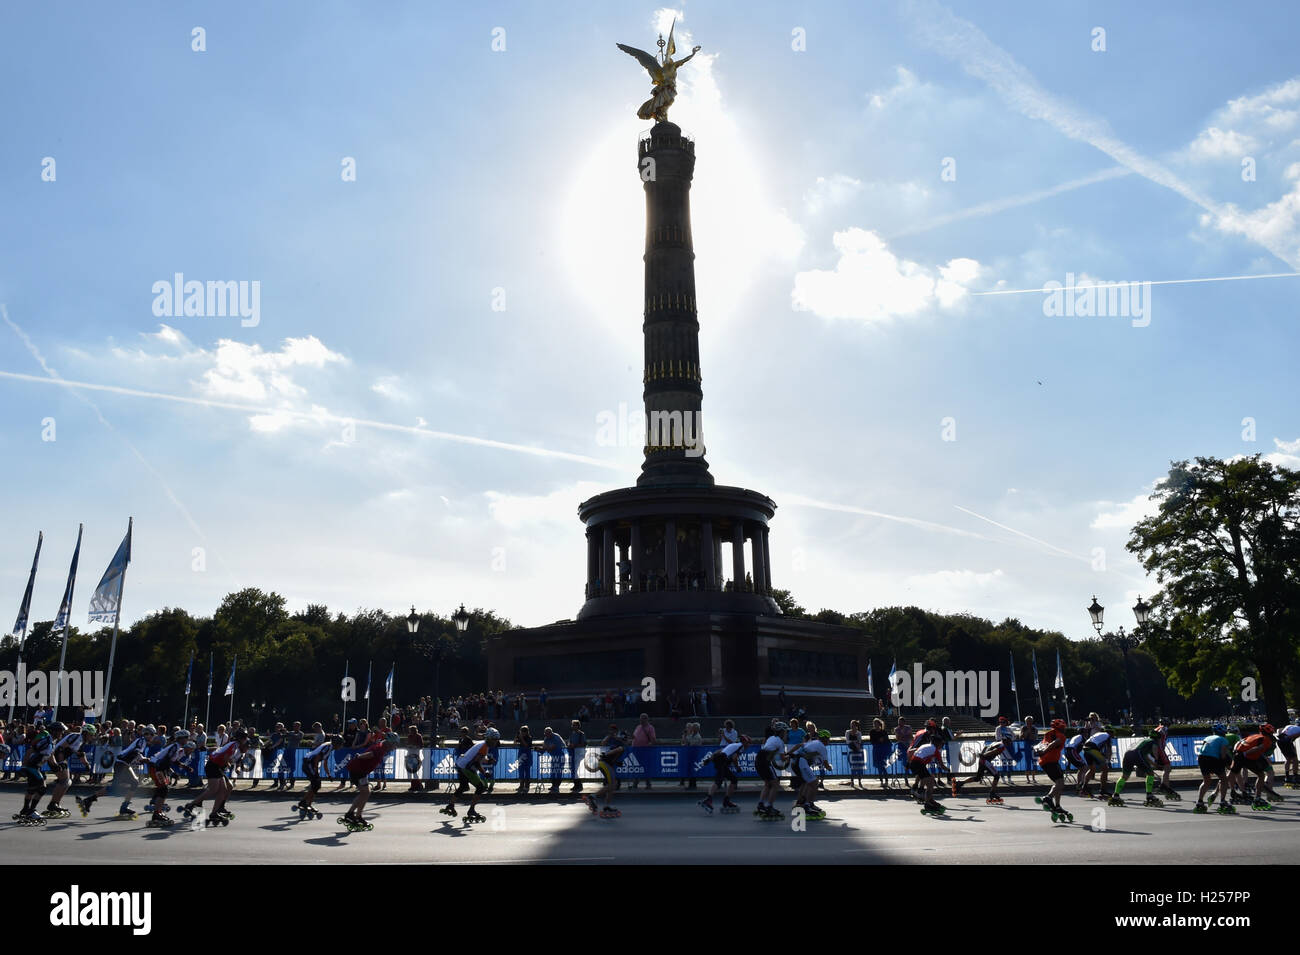 Berlin, Germany. 24th Sep, 2016. Numerous in-line skaters ride past the Victory Column during the in-line skating competition at the 43rd Berlin Marathon in Berlin, Germany, 24 September 2016. Photo: KLAUS-DIETMAR GABBERT/dpa/Alamy Live News Stock Photo